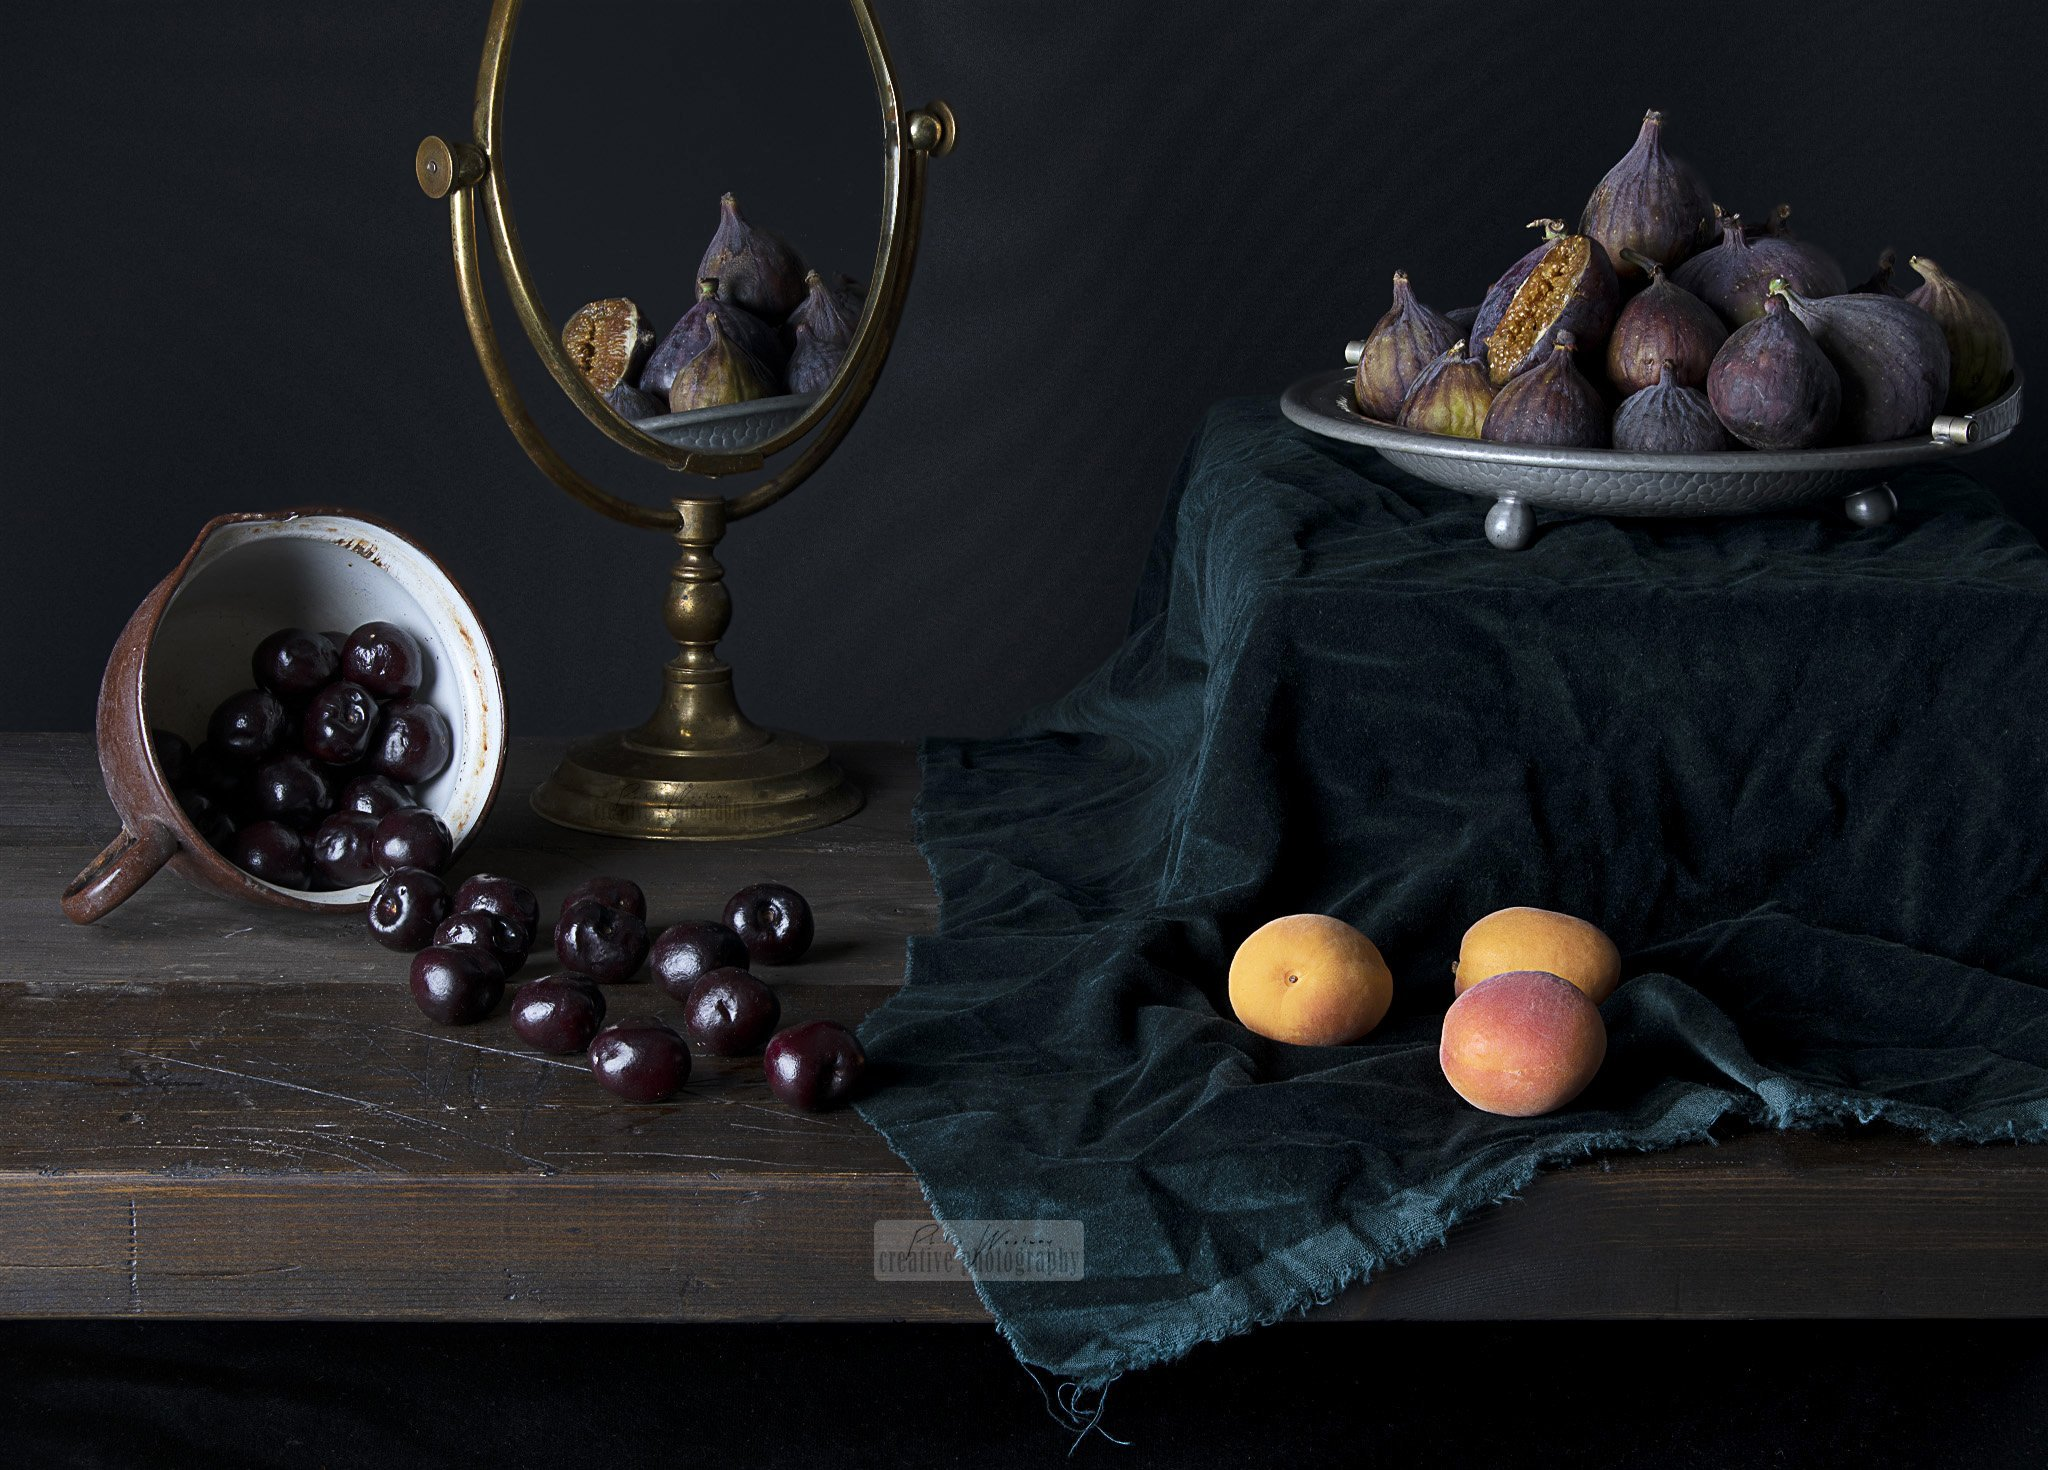 Apricots, cherries and figs with mirror - Still Life